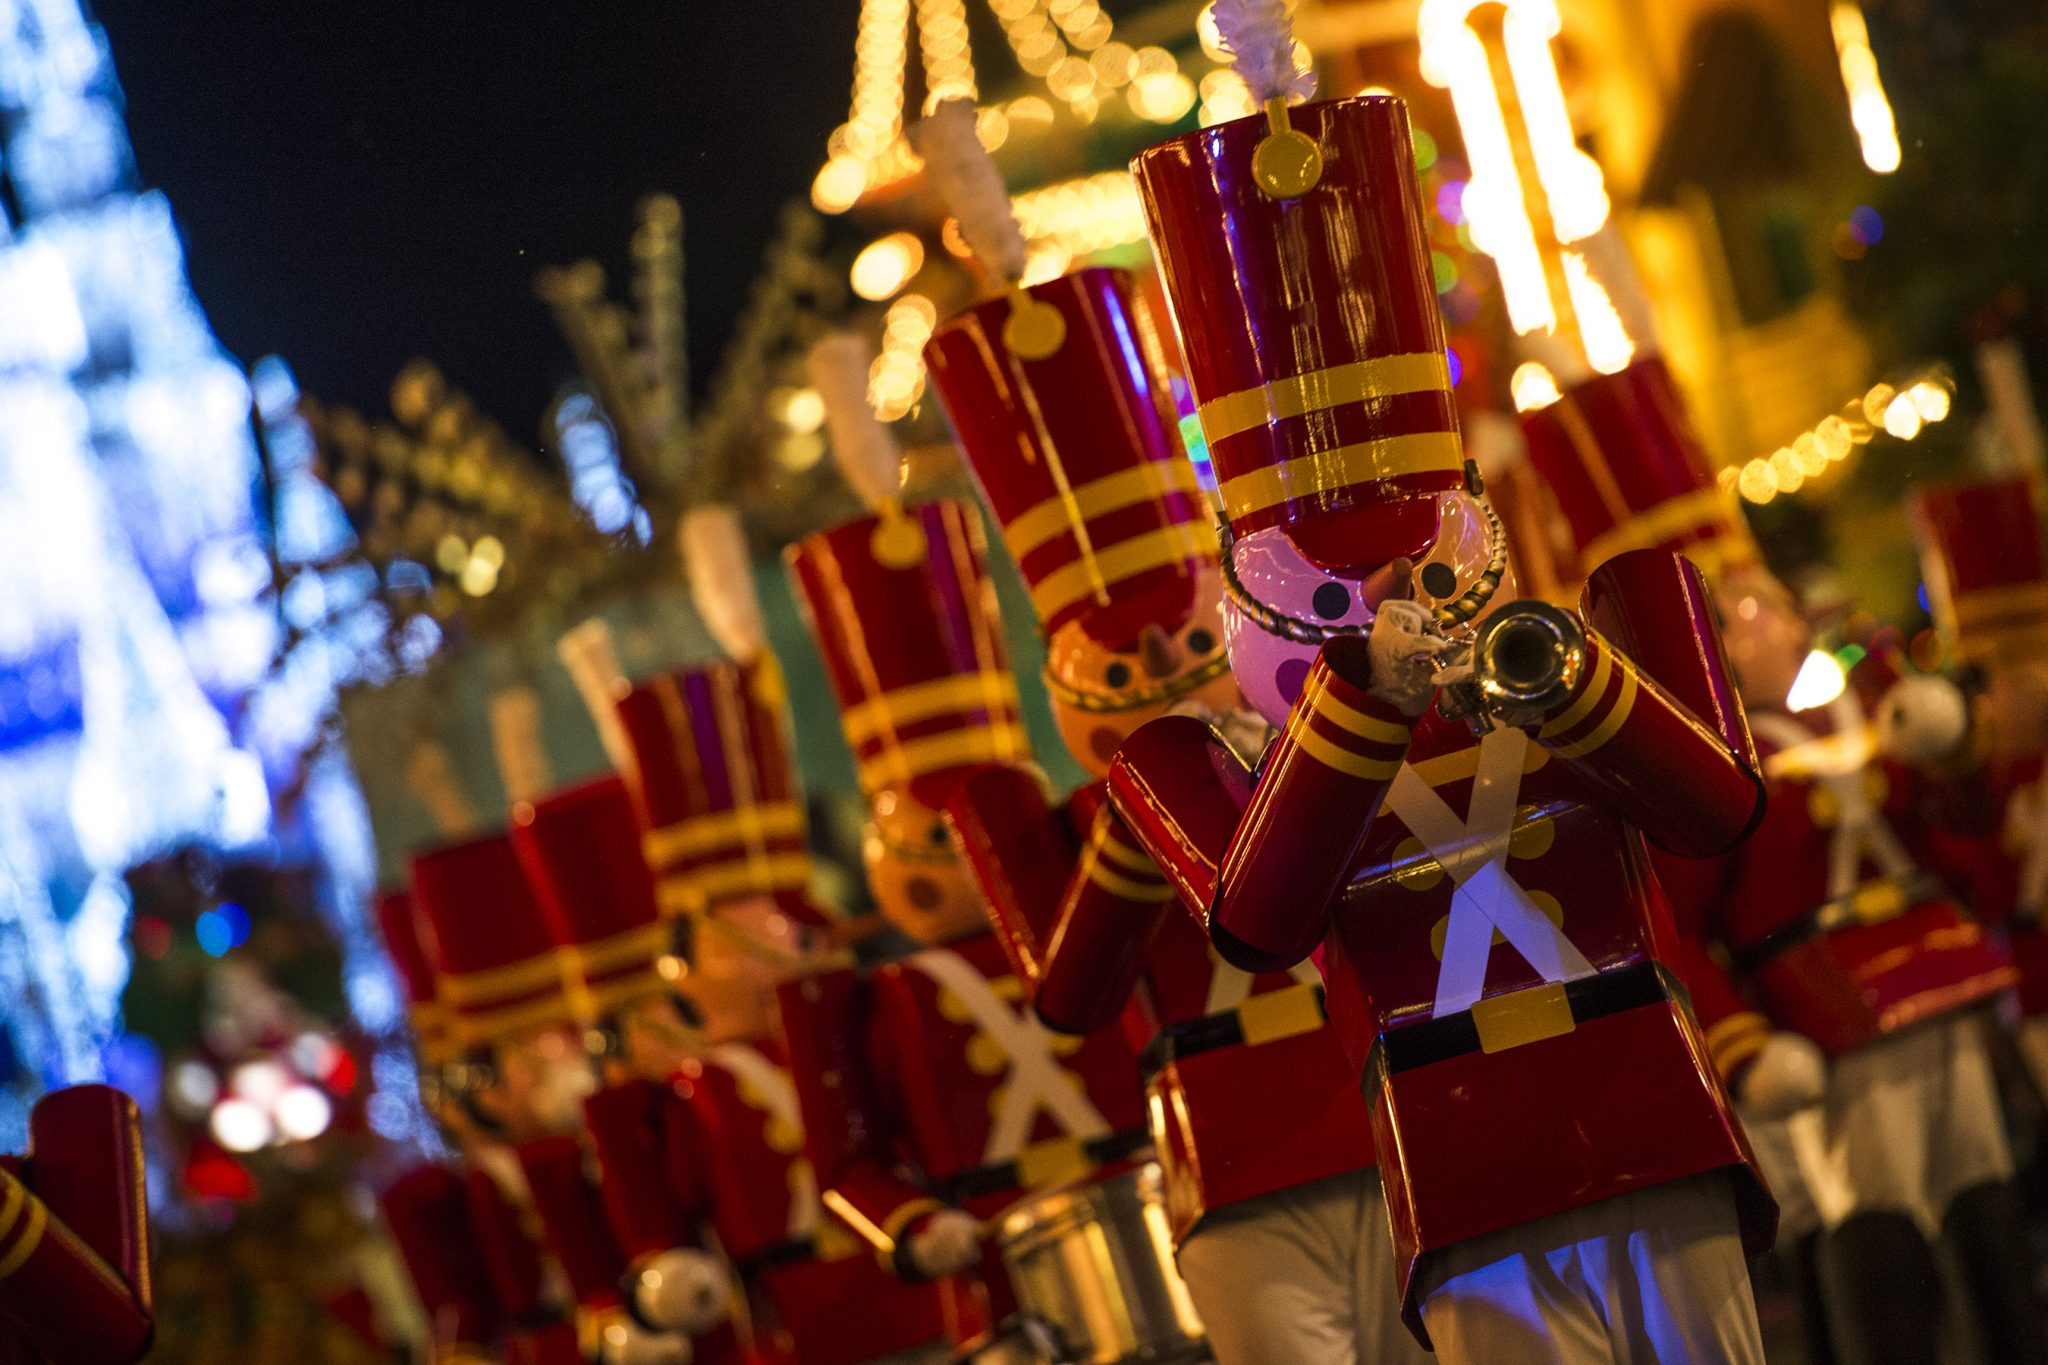 "Toy soldiers parade down Main Street, U.S.A., at Magic Kingdom during ""Mickey's Once Upon a Christmastime Parade."" The festive processional is one of the happy highlights of Mickey's Very Merry Christmas Party, a night of holiday splendor with lively stage shows, a unique holiday parade, Holiday Wishes: Celebrate the Spirit of the Season nighttime fireworks, and snow flurries on Main Street, U.S.A. The special-ticket event takes place on select nights in November and December in Magic Kingdom at Walt Disney World Resort in Lake Buena Vista, Fla. (Charlie Champagne, photographer)"